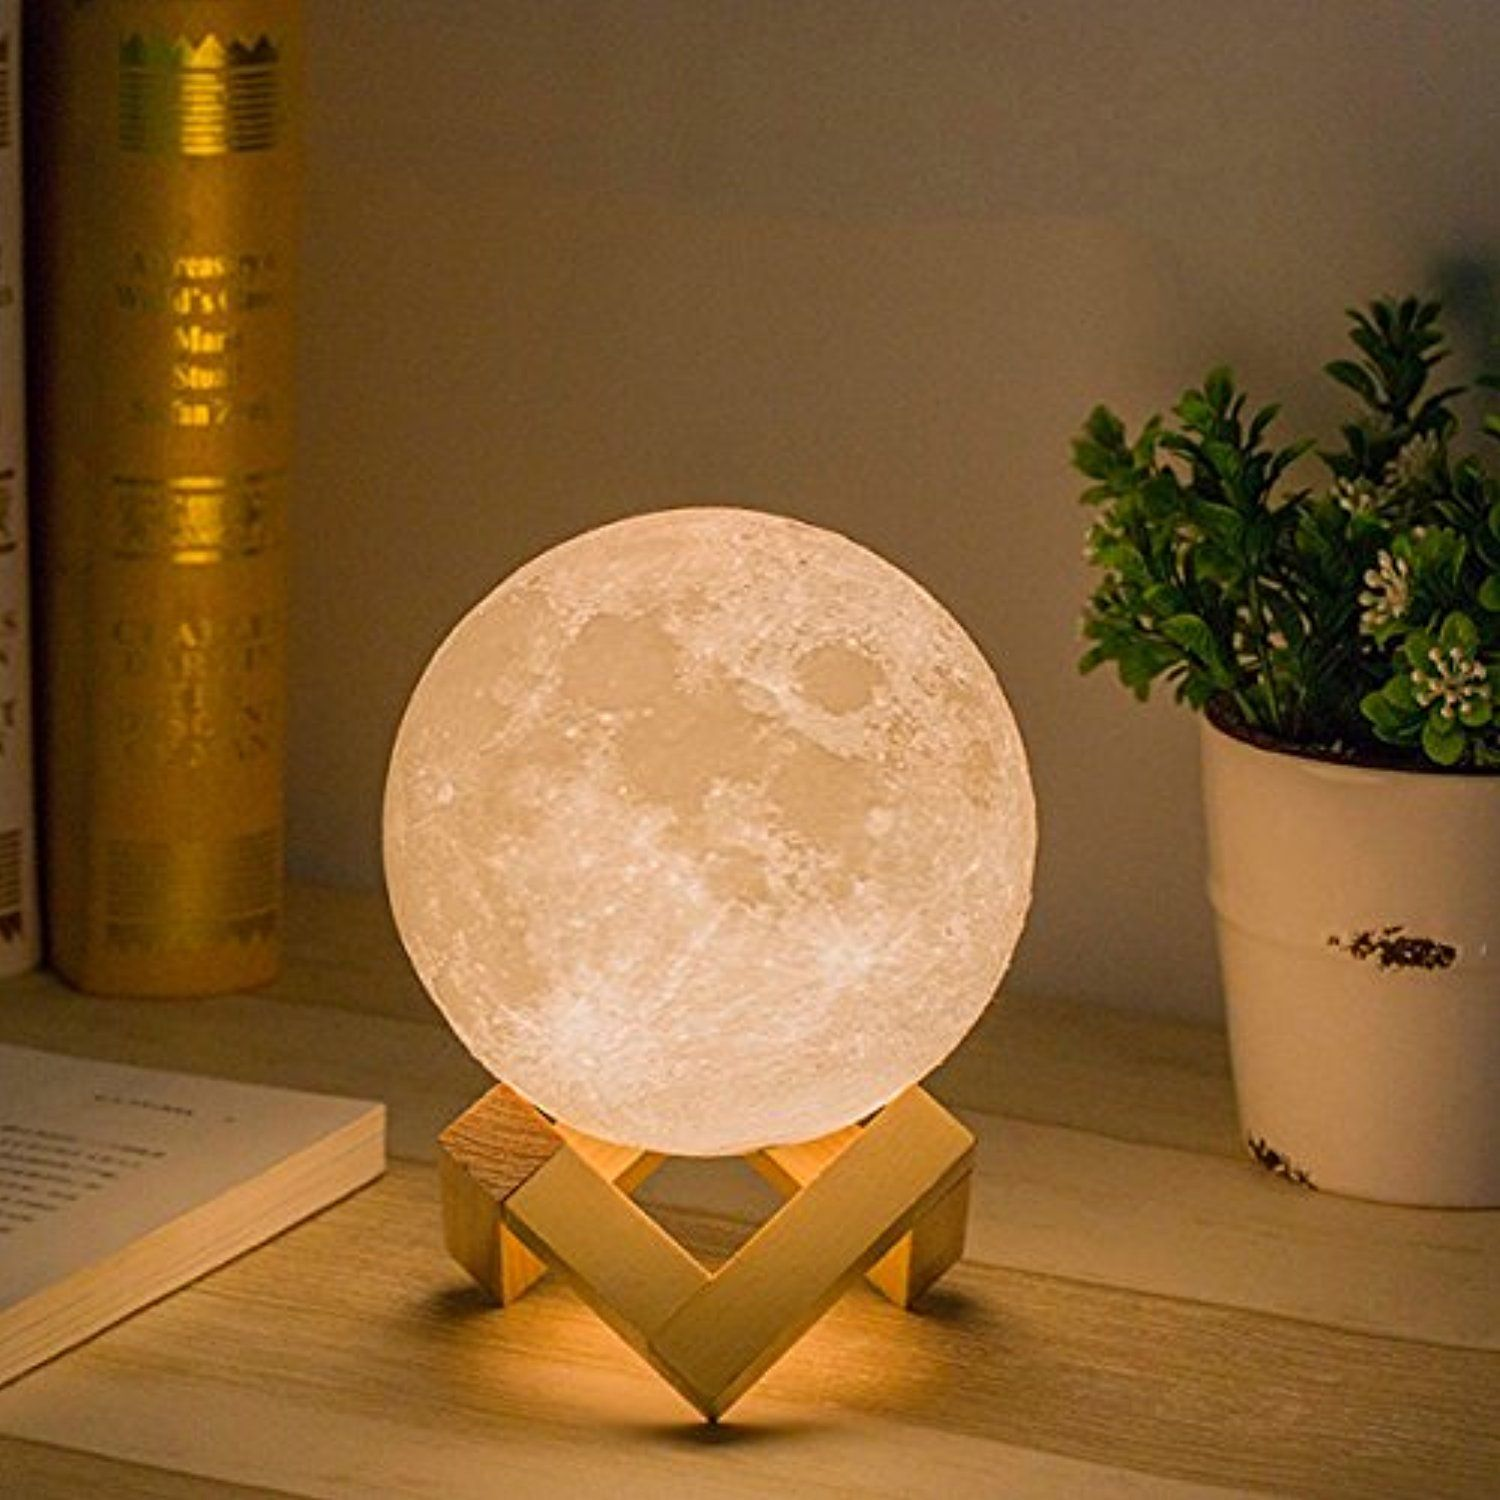 Aissimio Night Light 3d Printing Moon Lamp Rechargeable Night Light Dimmable Touch Control Brightness Thr Mond Lampe Ideen Zum Selbermachen Fur Zu Hause Lampe